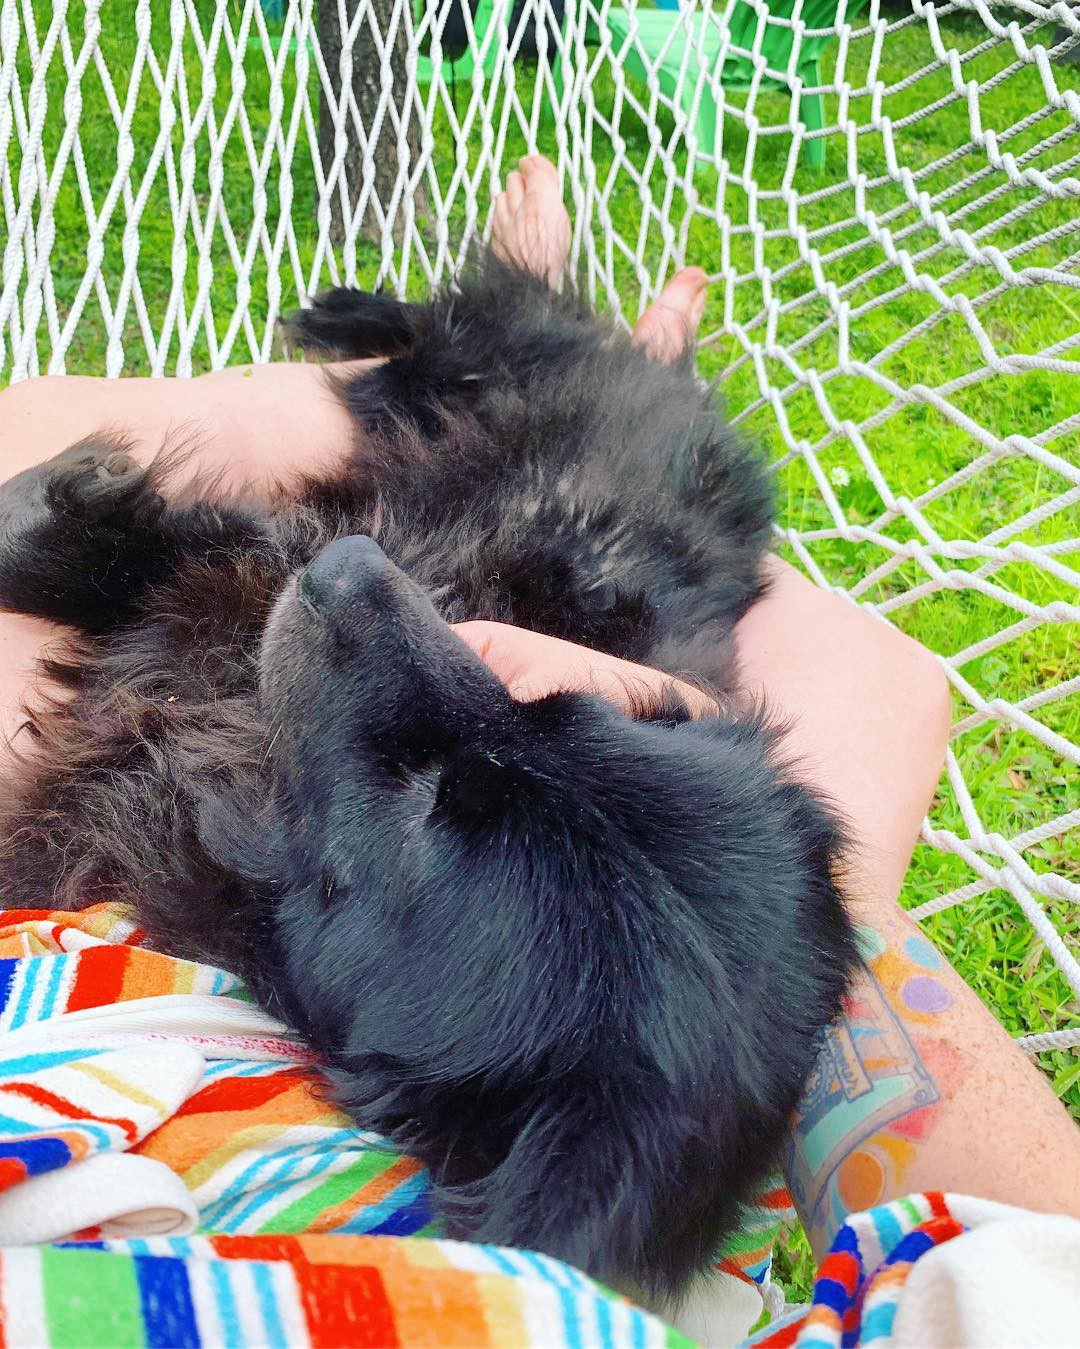 A black dog reclining in the author's lap in a hammock above bright green grass